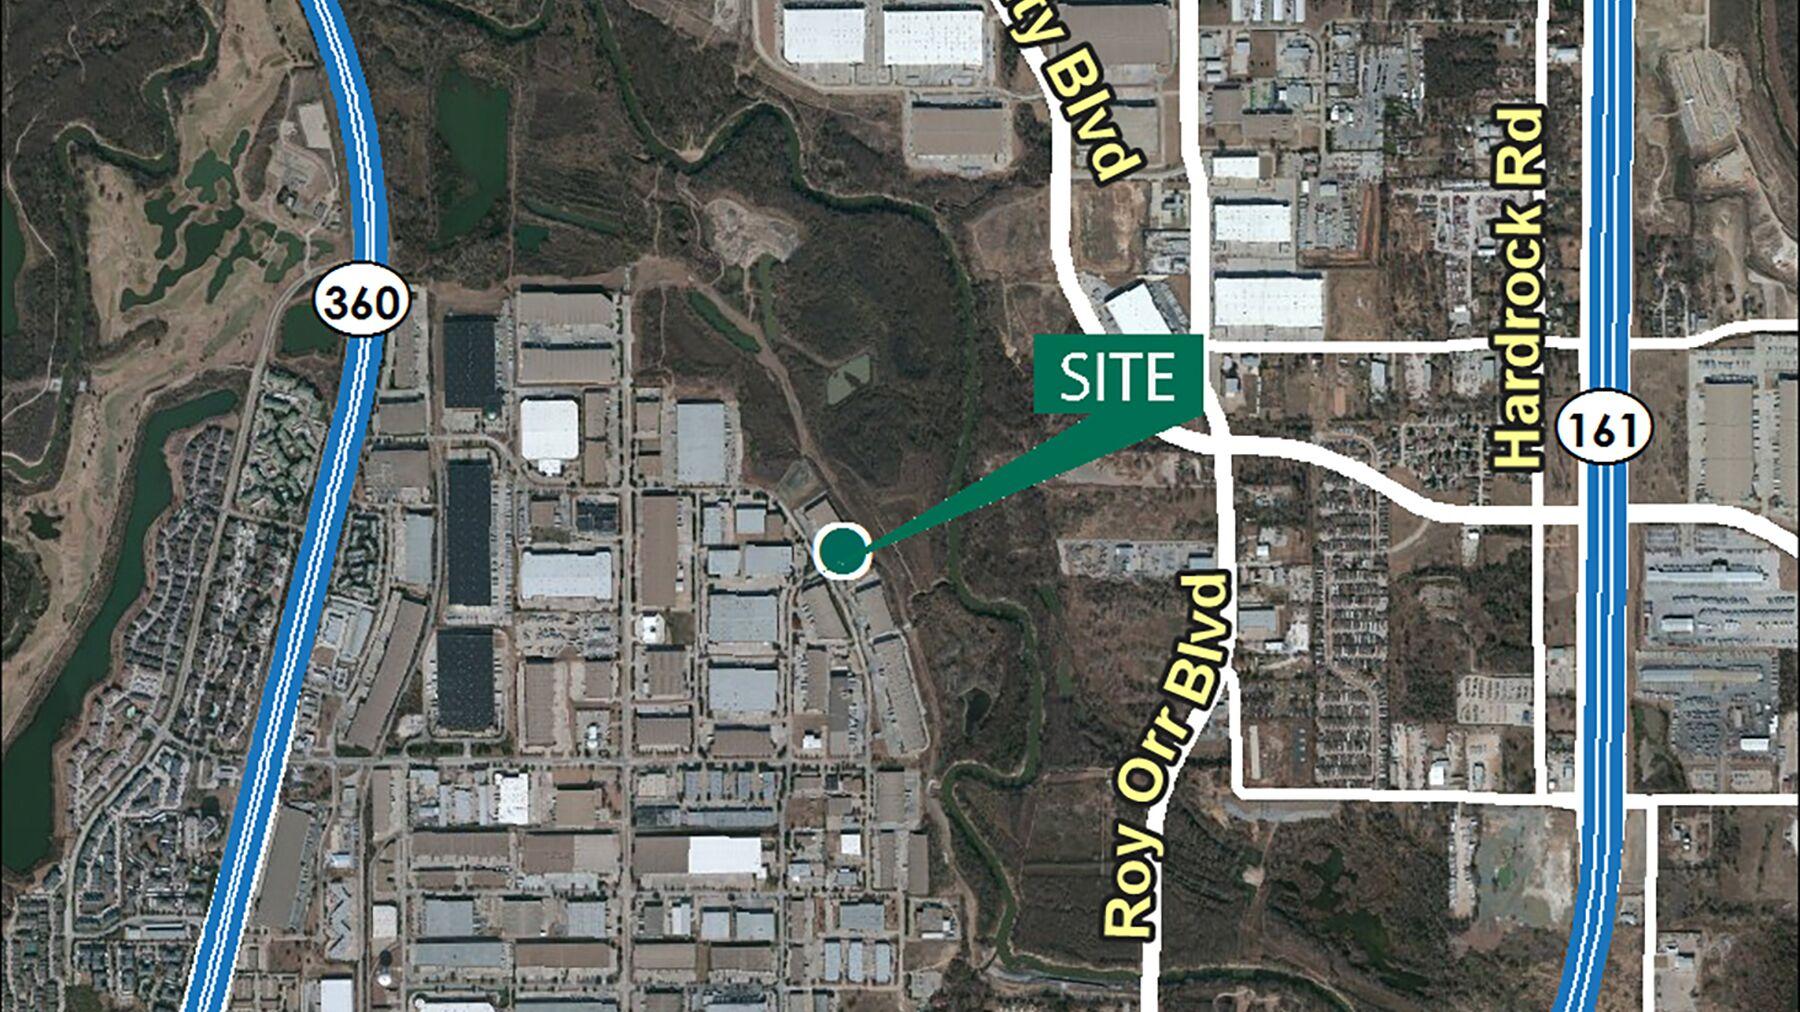 DPM-Prologis-Great-Southwest-53-DAL01903-2920-114th-Street_AerialMap.jpg